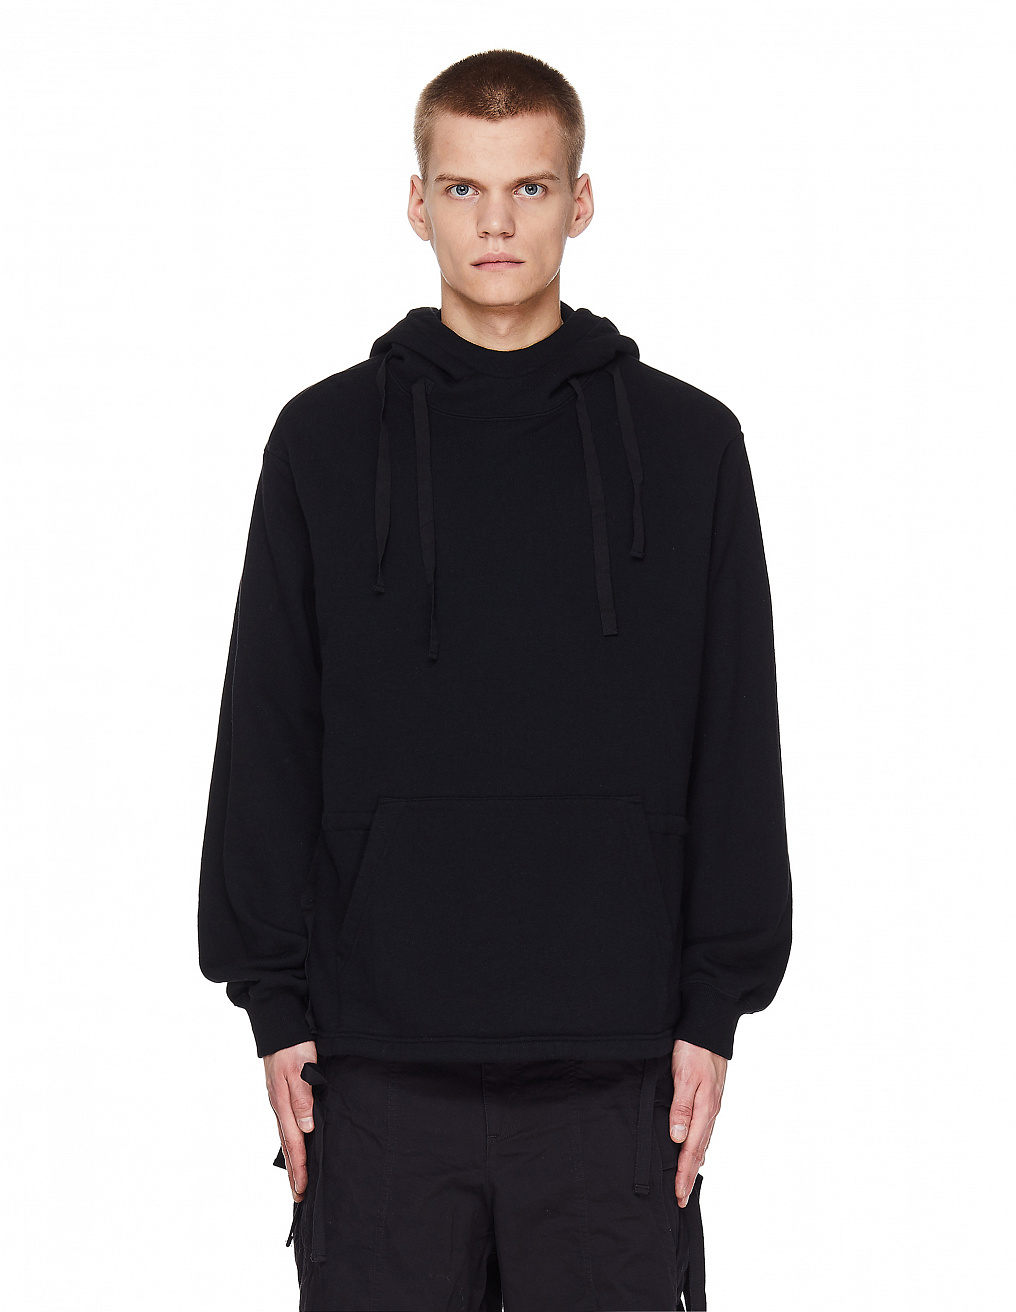 Black Cotton Sweatshirt Undercover - buy